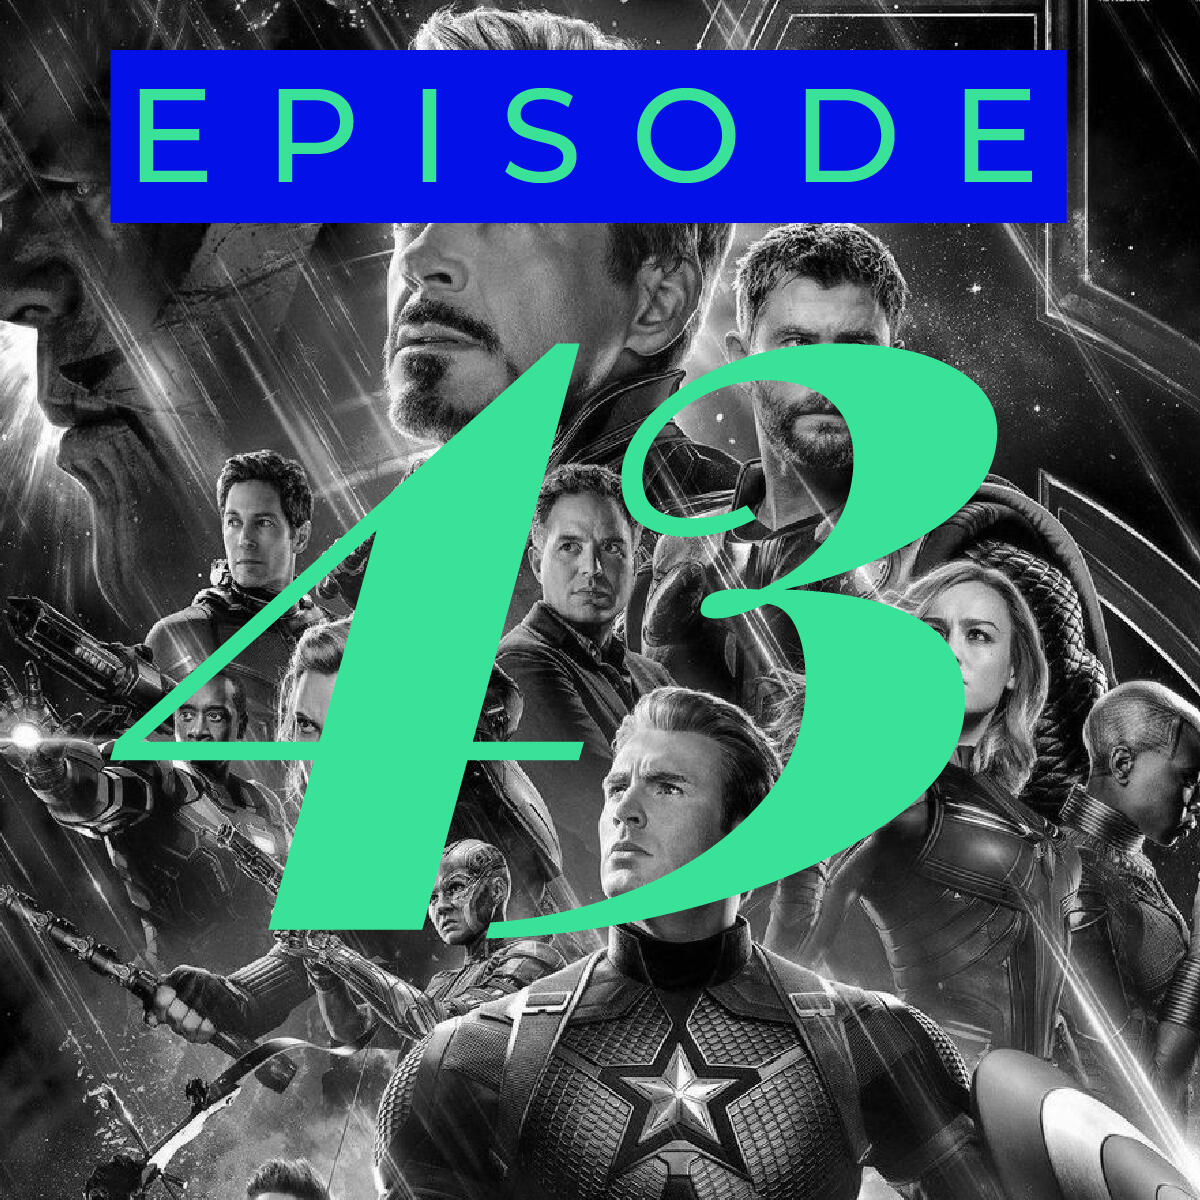 43: Avengers: Endgame, Modi-Mamata rivalry, Cat's space funeral